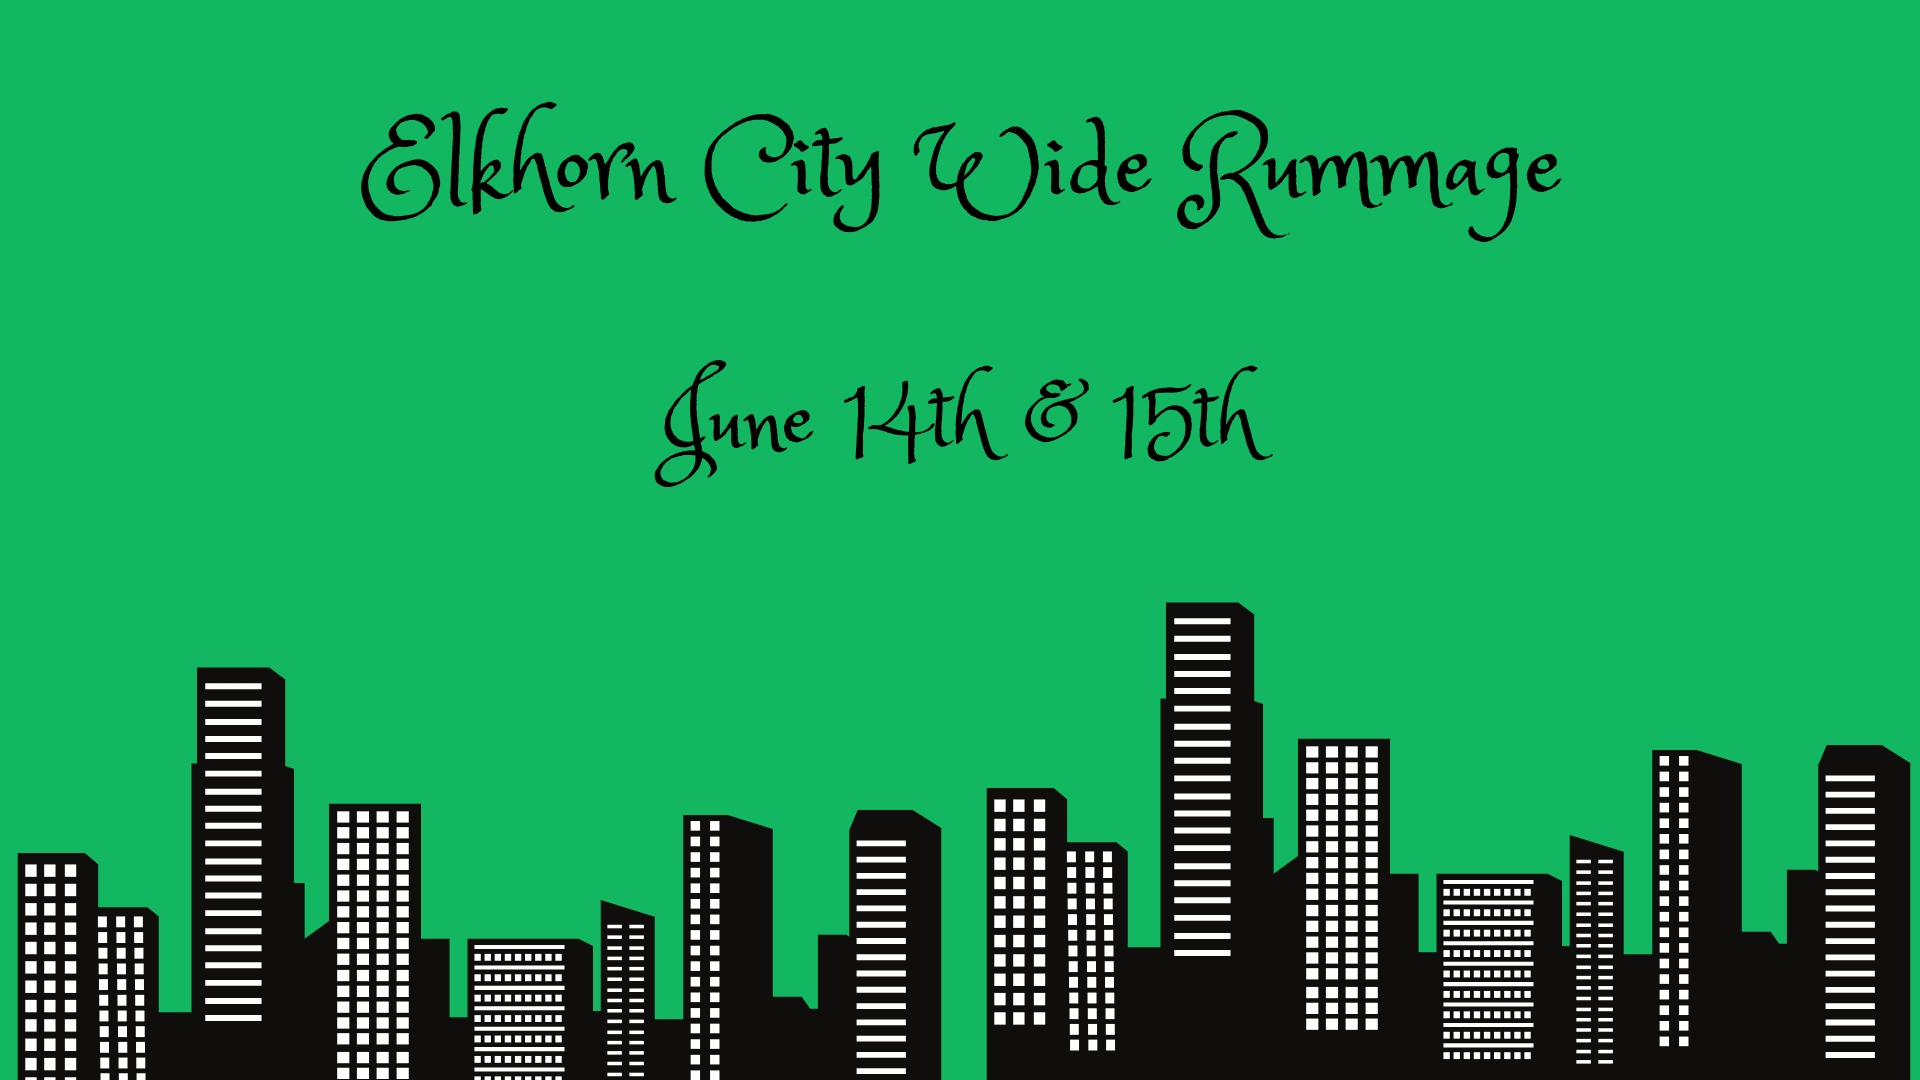 City Wide Rummage - Elkhorn Area Chamber of Commerce, WI